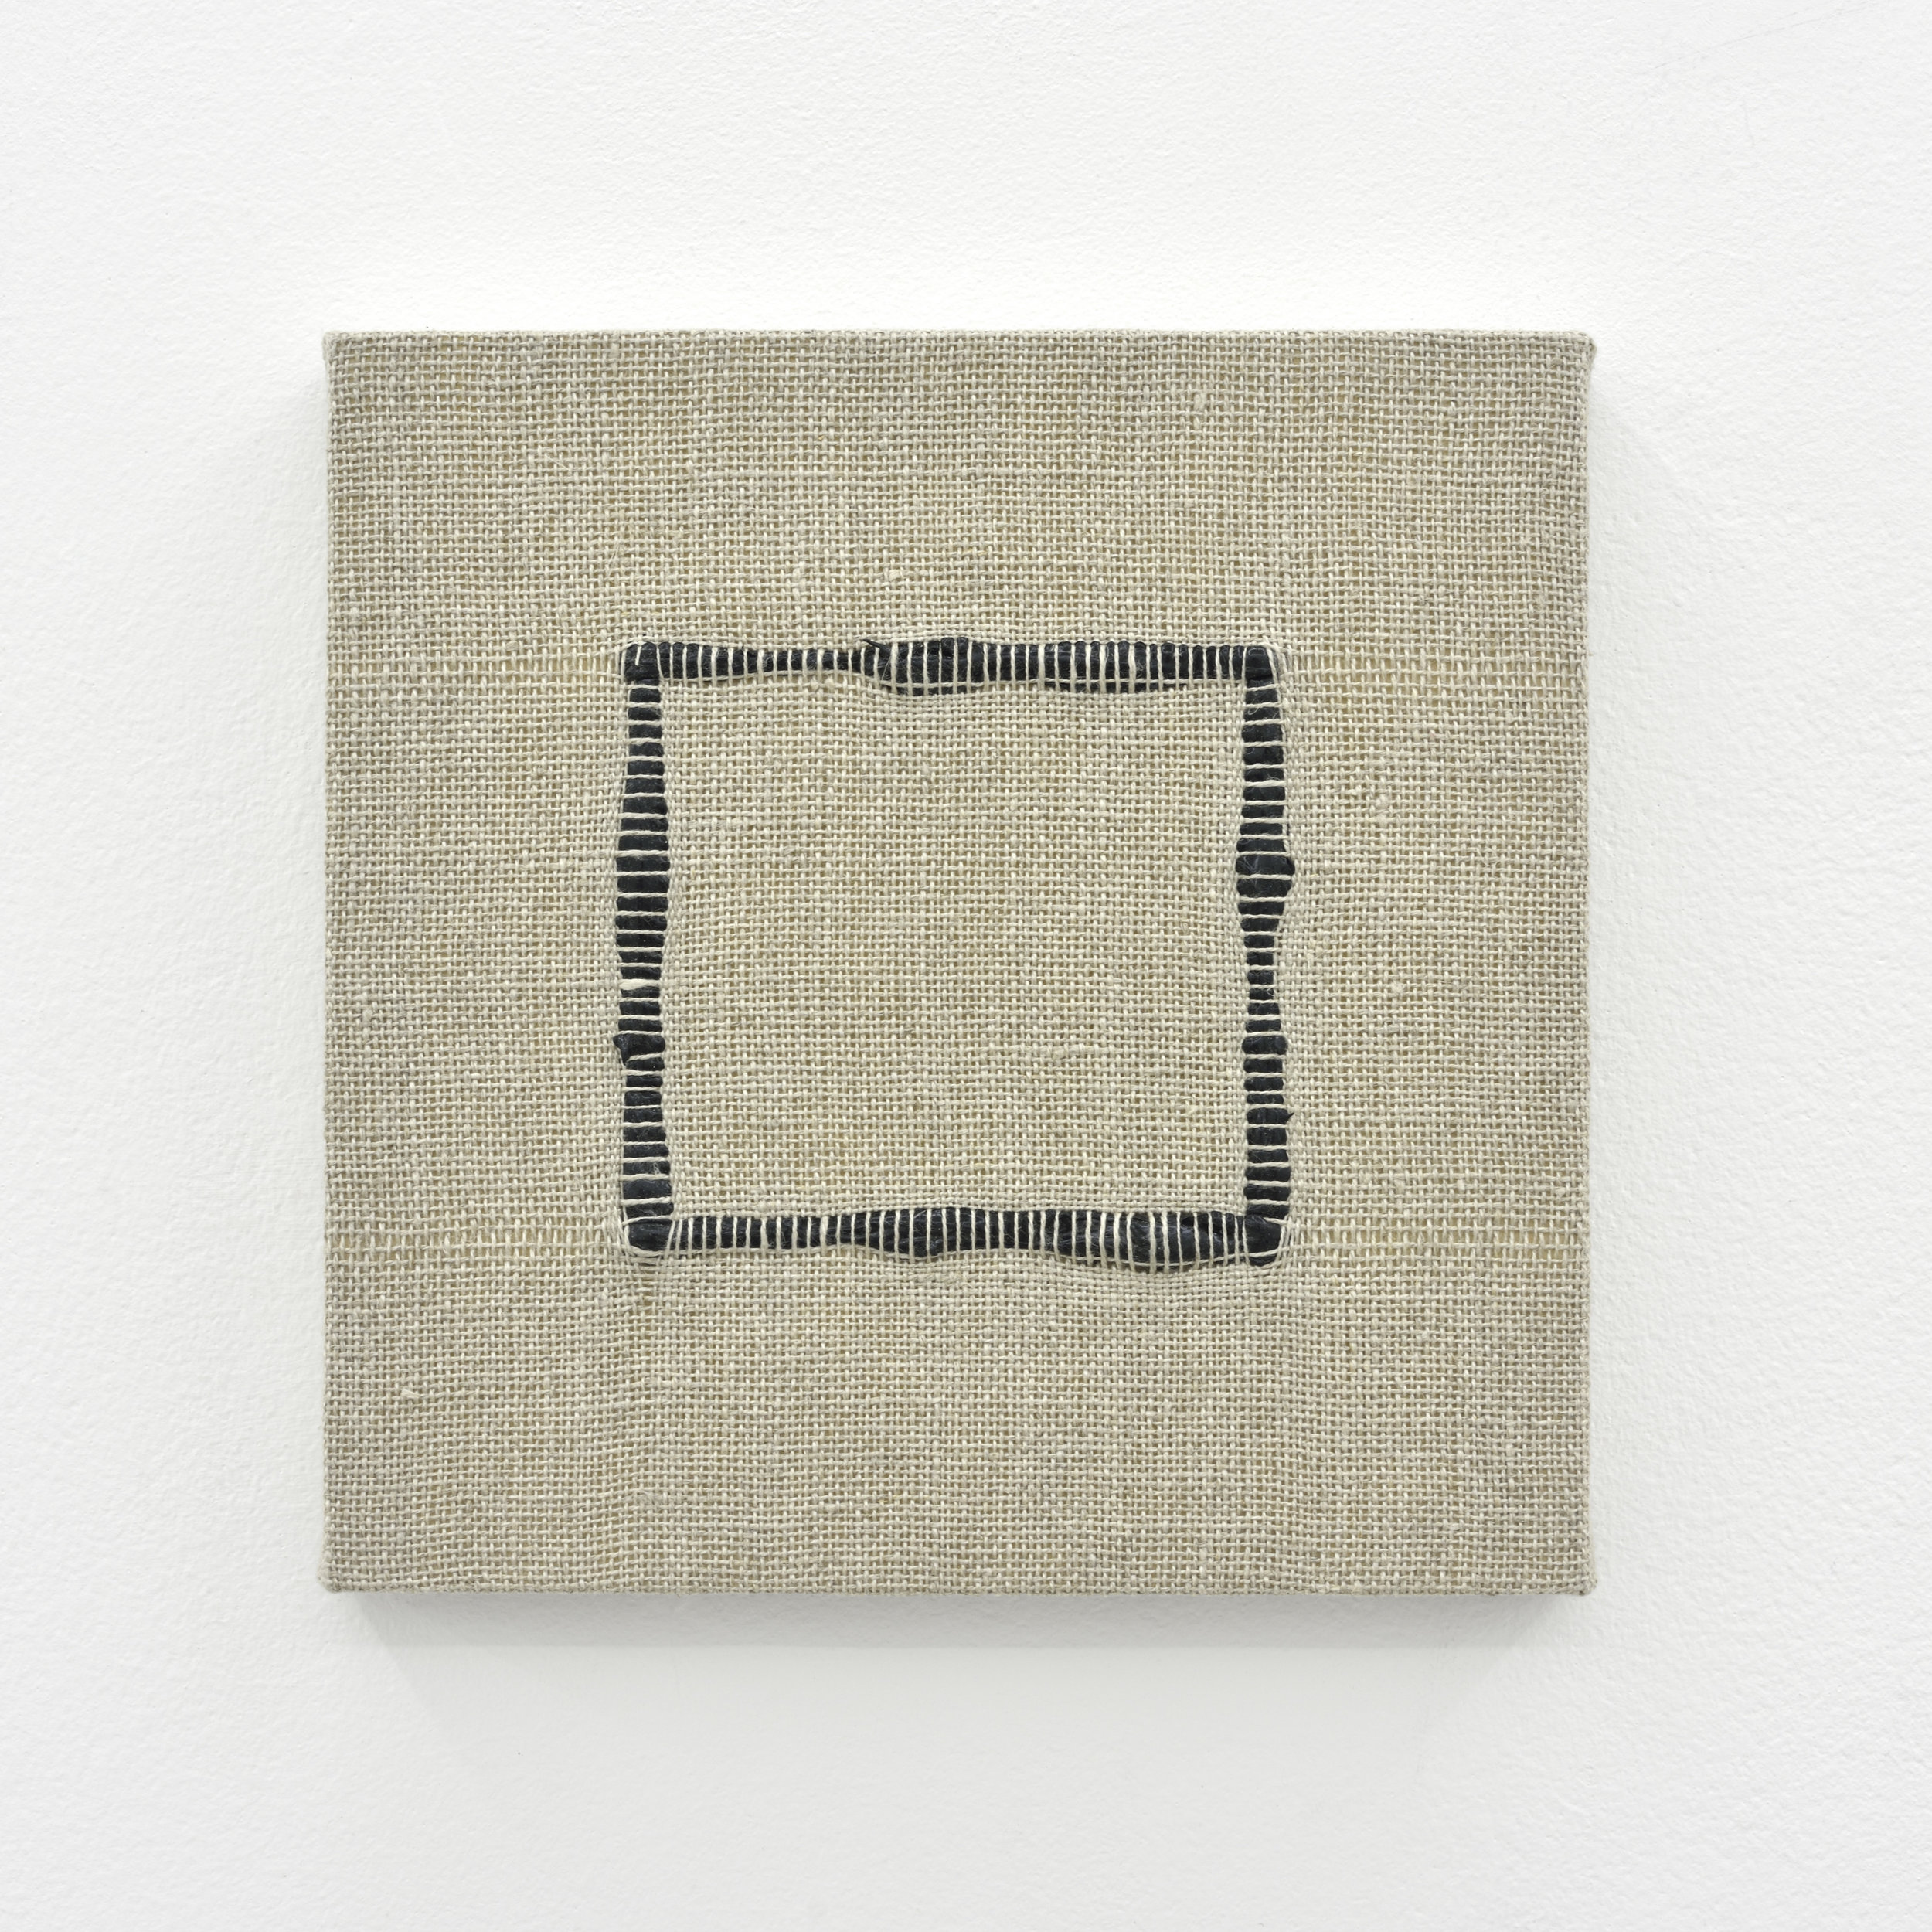 Composition for Woven Square Outline (Black), 2017 acrylic paint woven through linen 20 x 20 x 2 cm - 7 7/8 x 7 7/8 x 0 3/4 inches